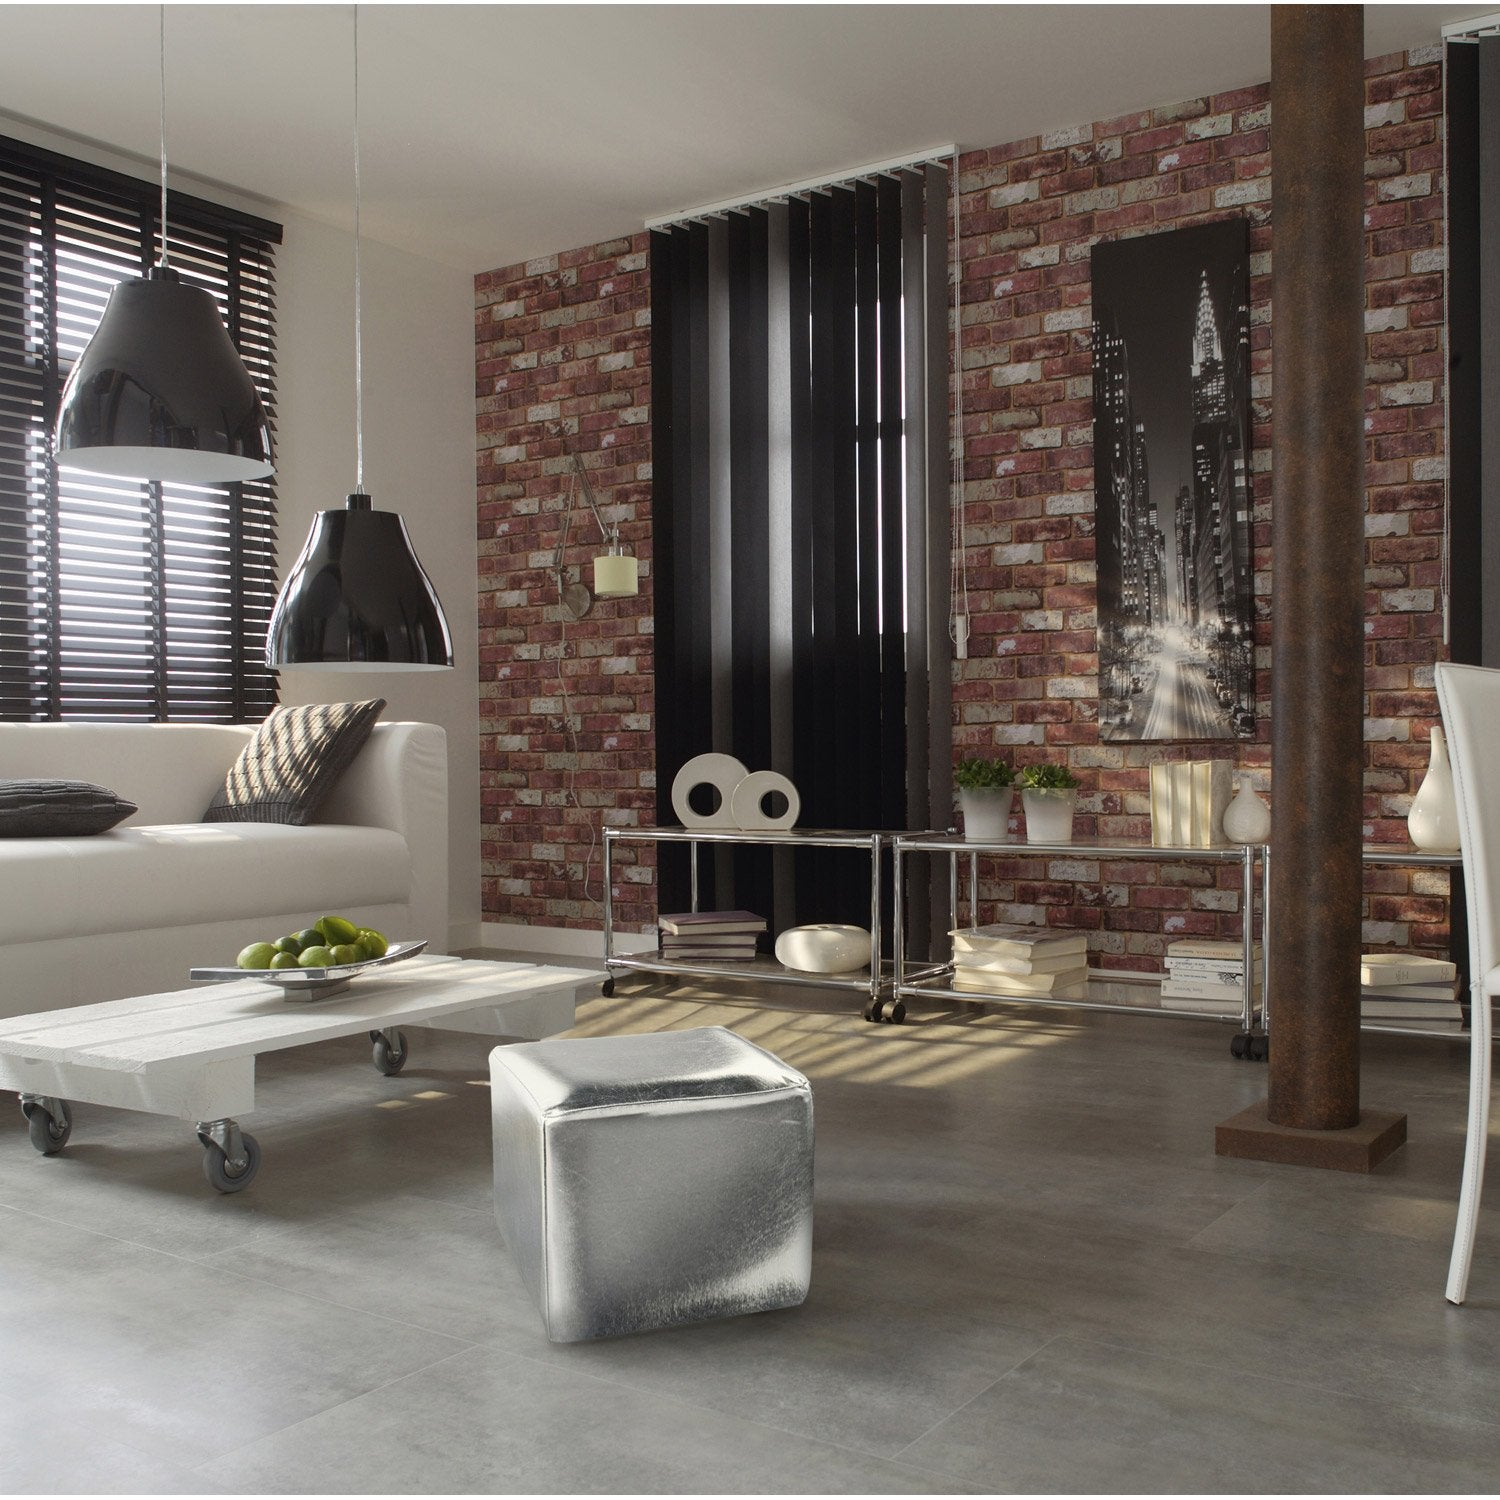 r aliser un sol en b ton cir 3h leroy merlin. Black Bedroom Furniture Sets. Home Design Ideas